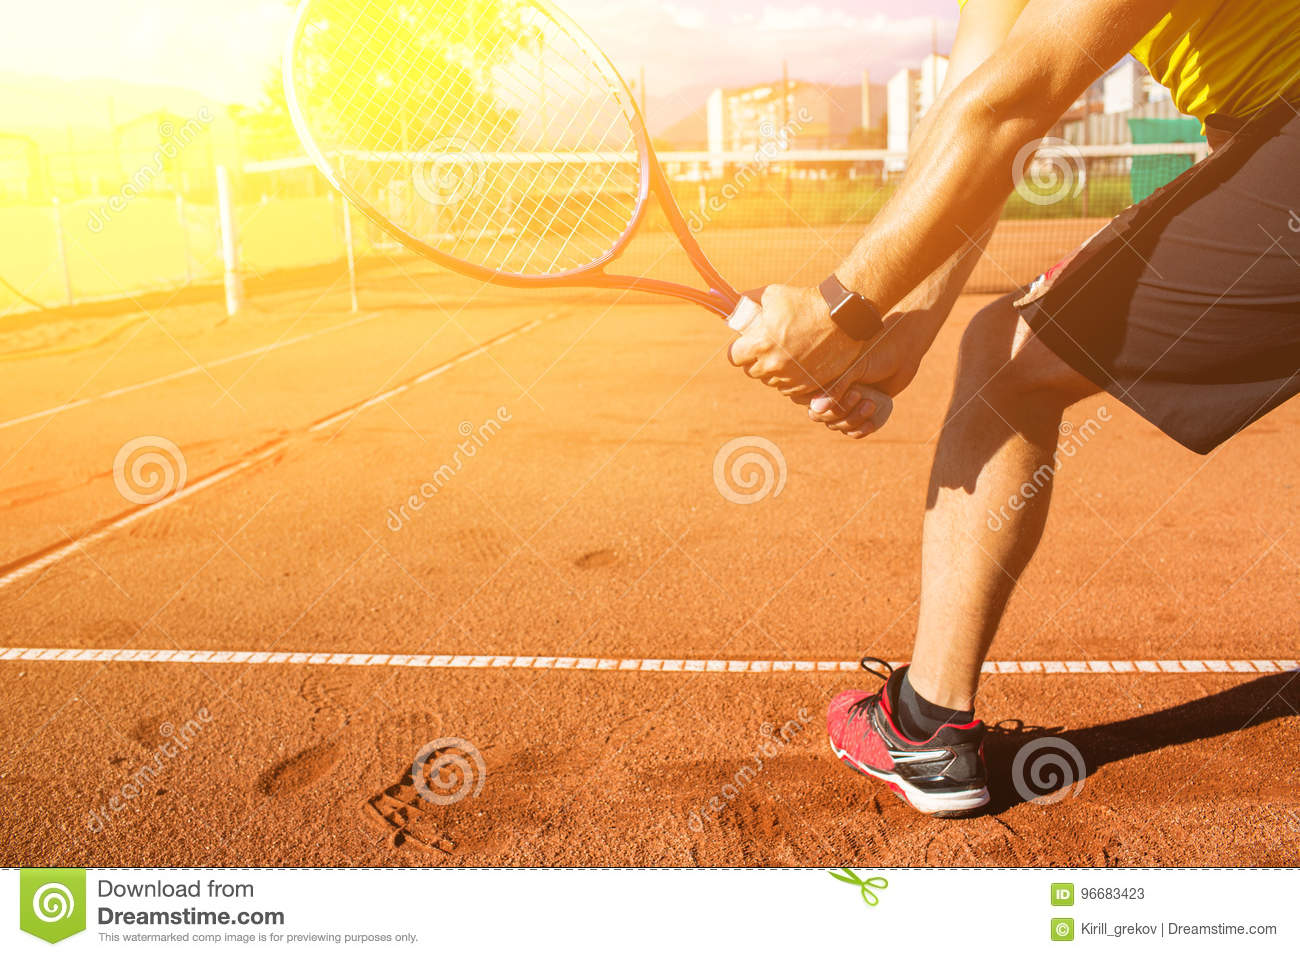 Male hand with tennis racket